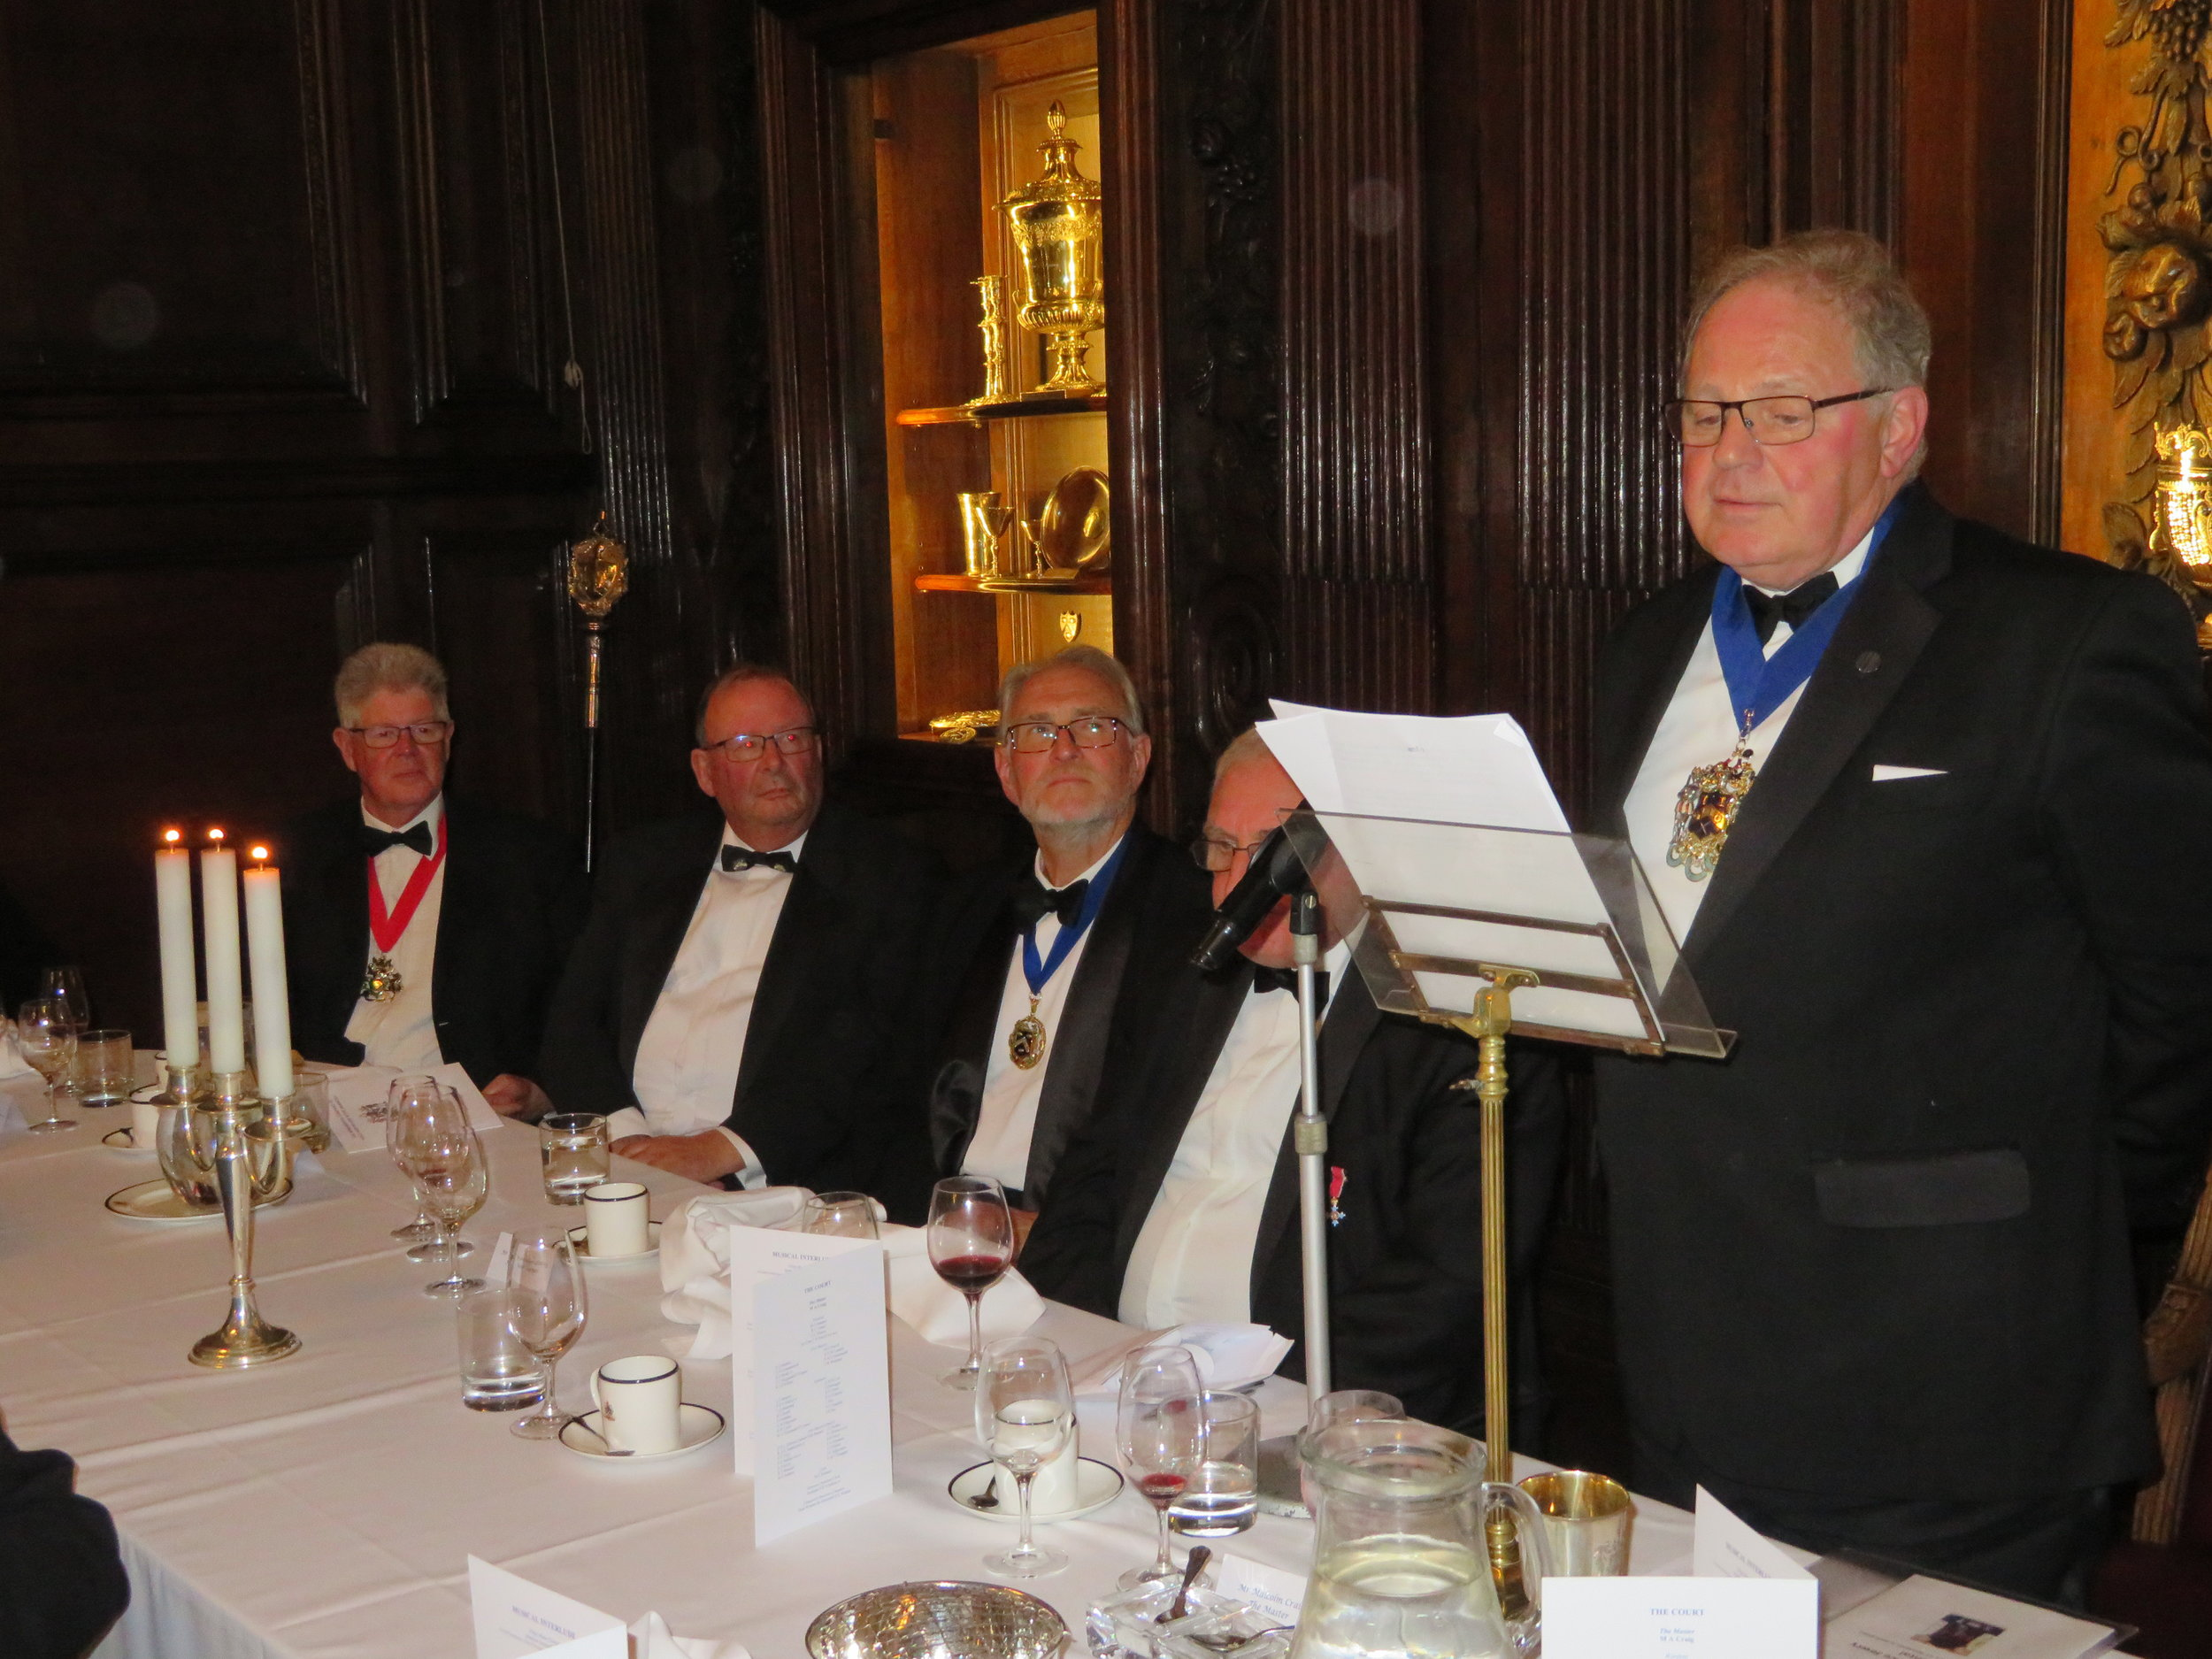 Mr Rick Alford - Master Hackney Carriage Drivers, Past Master Emeritus Tim Waller, Mr Christopher Davey - Master Vintner, Mr Tom McGrath CBE & The Master